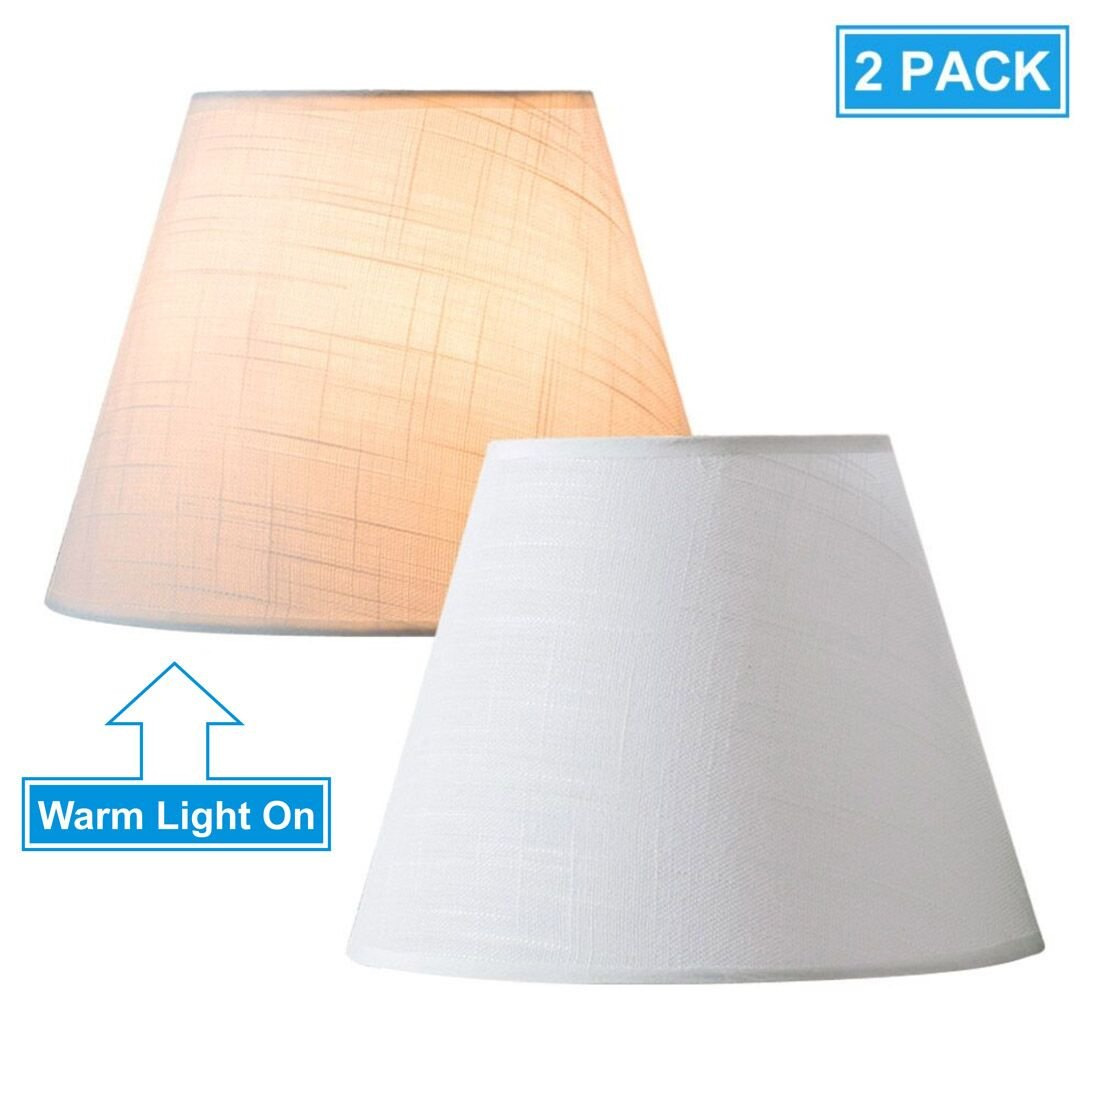 Lamp shades amazon lighting ceiling fans lighting lifeholder lamp shade mini 2 pack small table and desk lamp shade white linen greentooth Choice Image